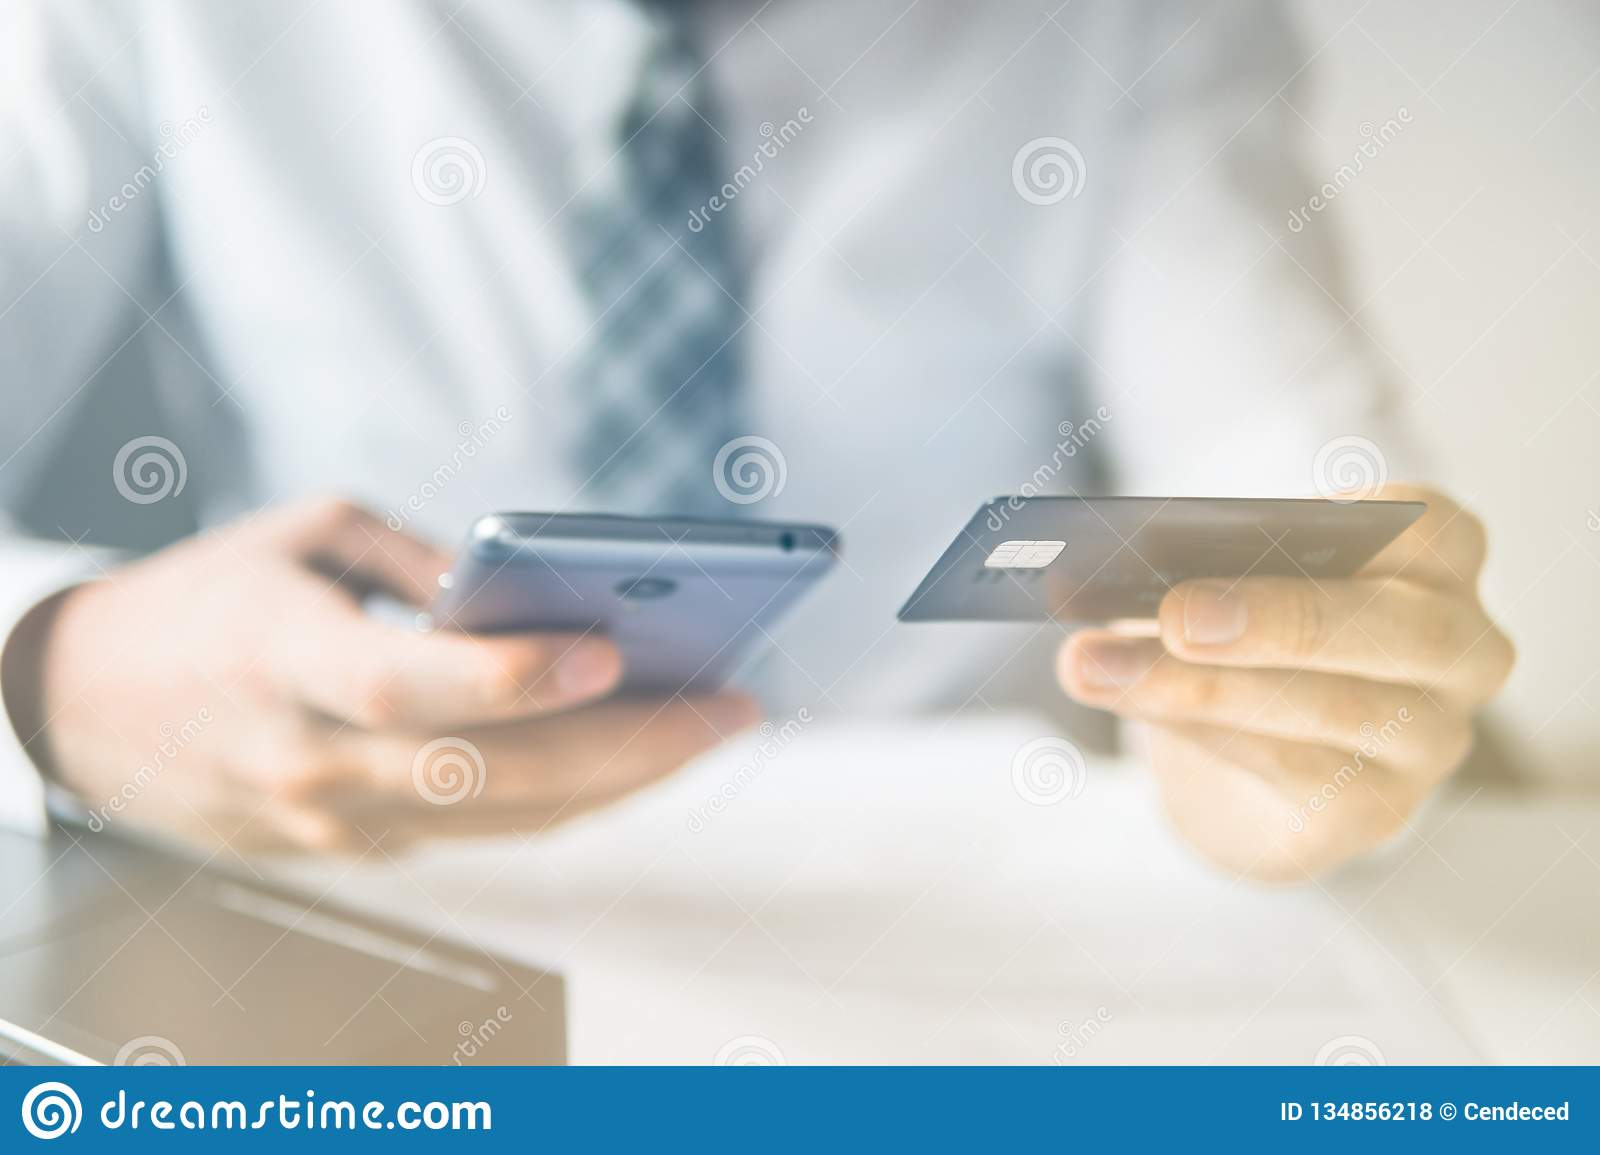 64f2b13df99 Businessman uses credit card and a smartphone. Shopping online. Mobile phone.  Online payment.